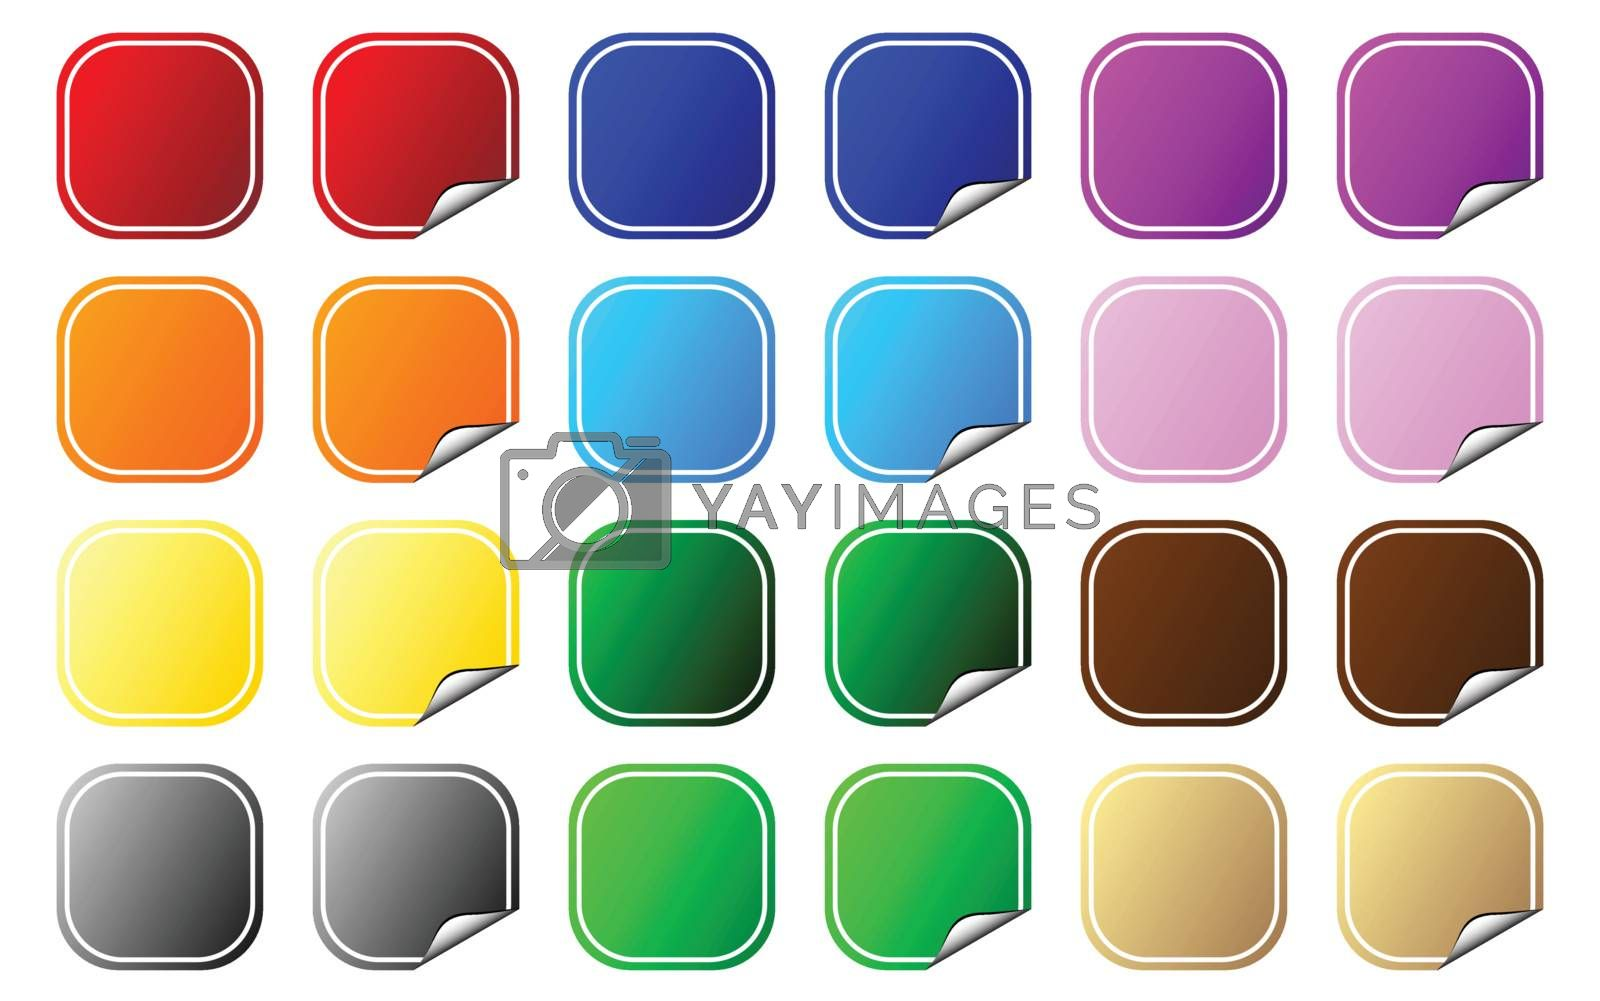 Royalty free image of Collection of Colored Stickers by ajn